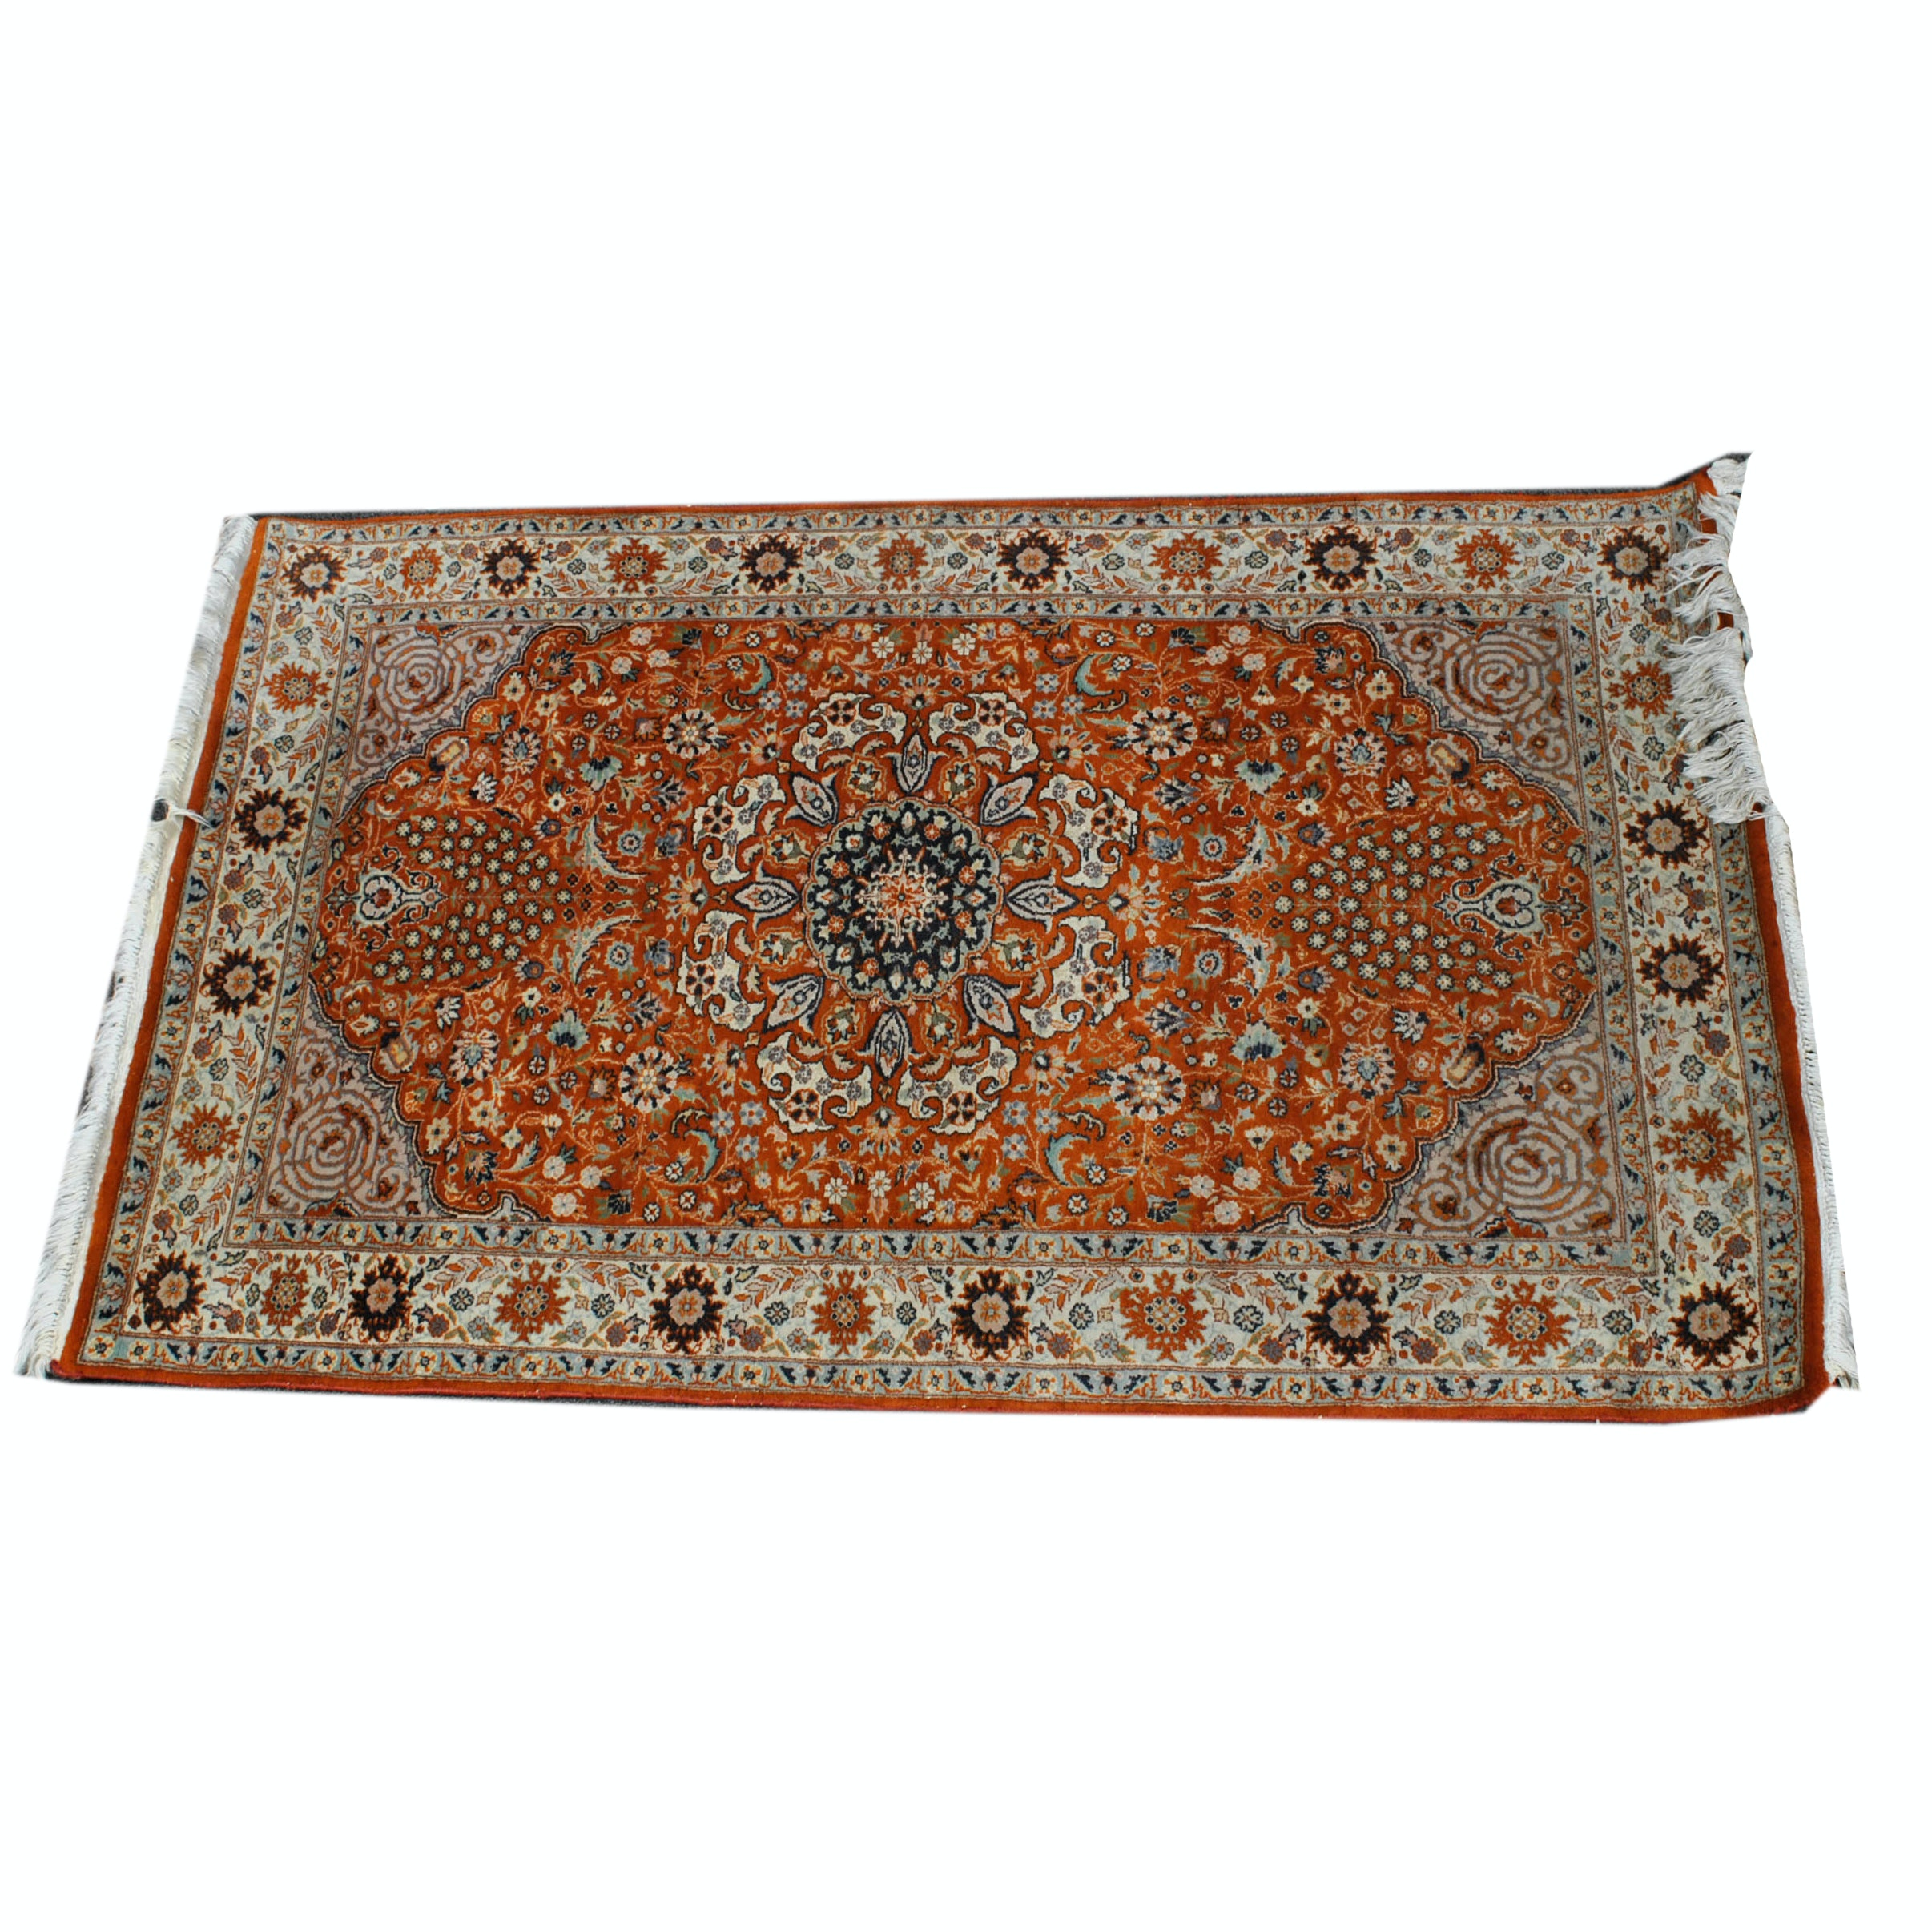 Hand-Knotted Pakistani Tabriz Wool Accent Rug